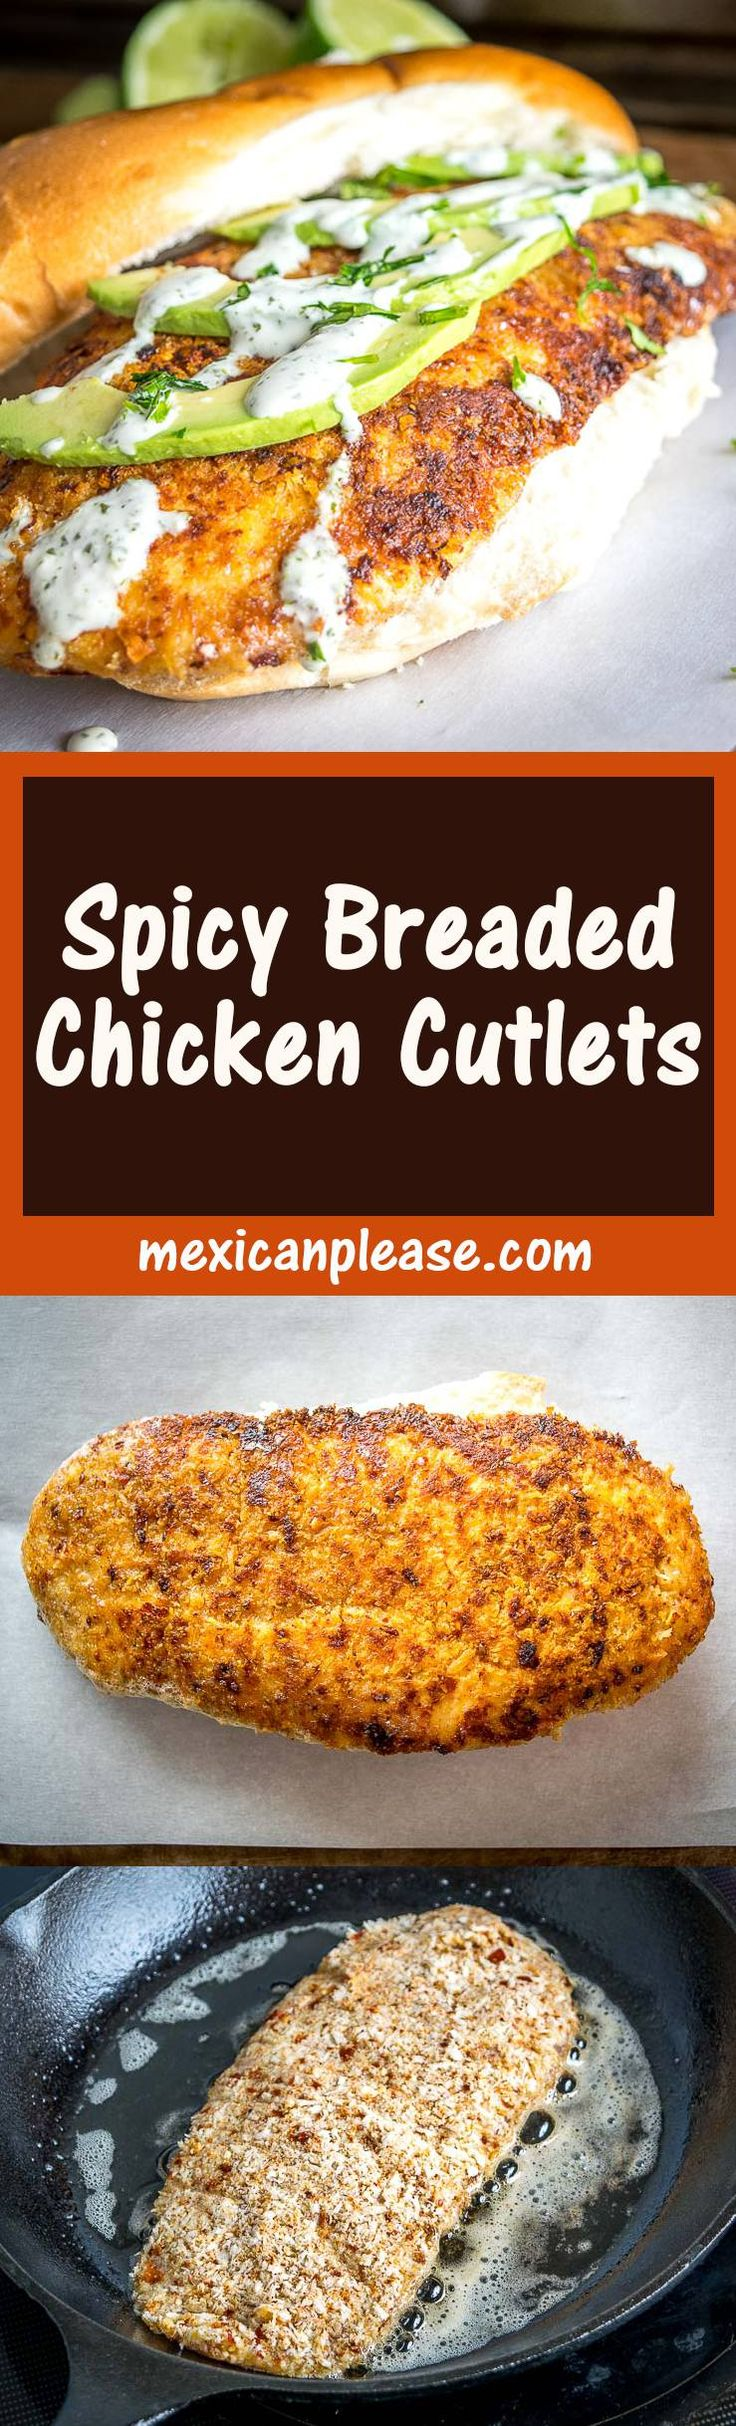 Here's a great recipe to keep in mind for a spicy batch of Breaded Chicken Cutlets.  Feel free to substitute Parmesan for the Cotija cheese!  mexicanplease.com